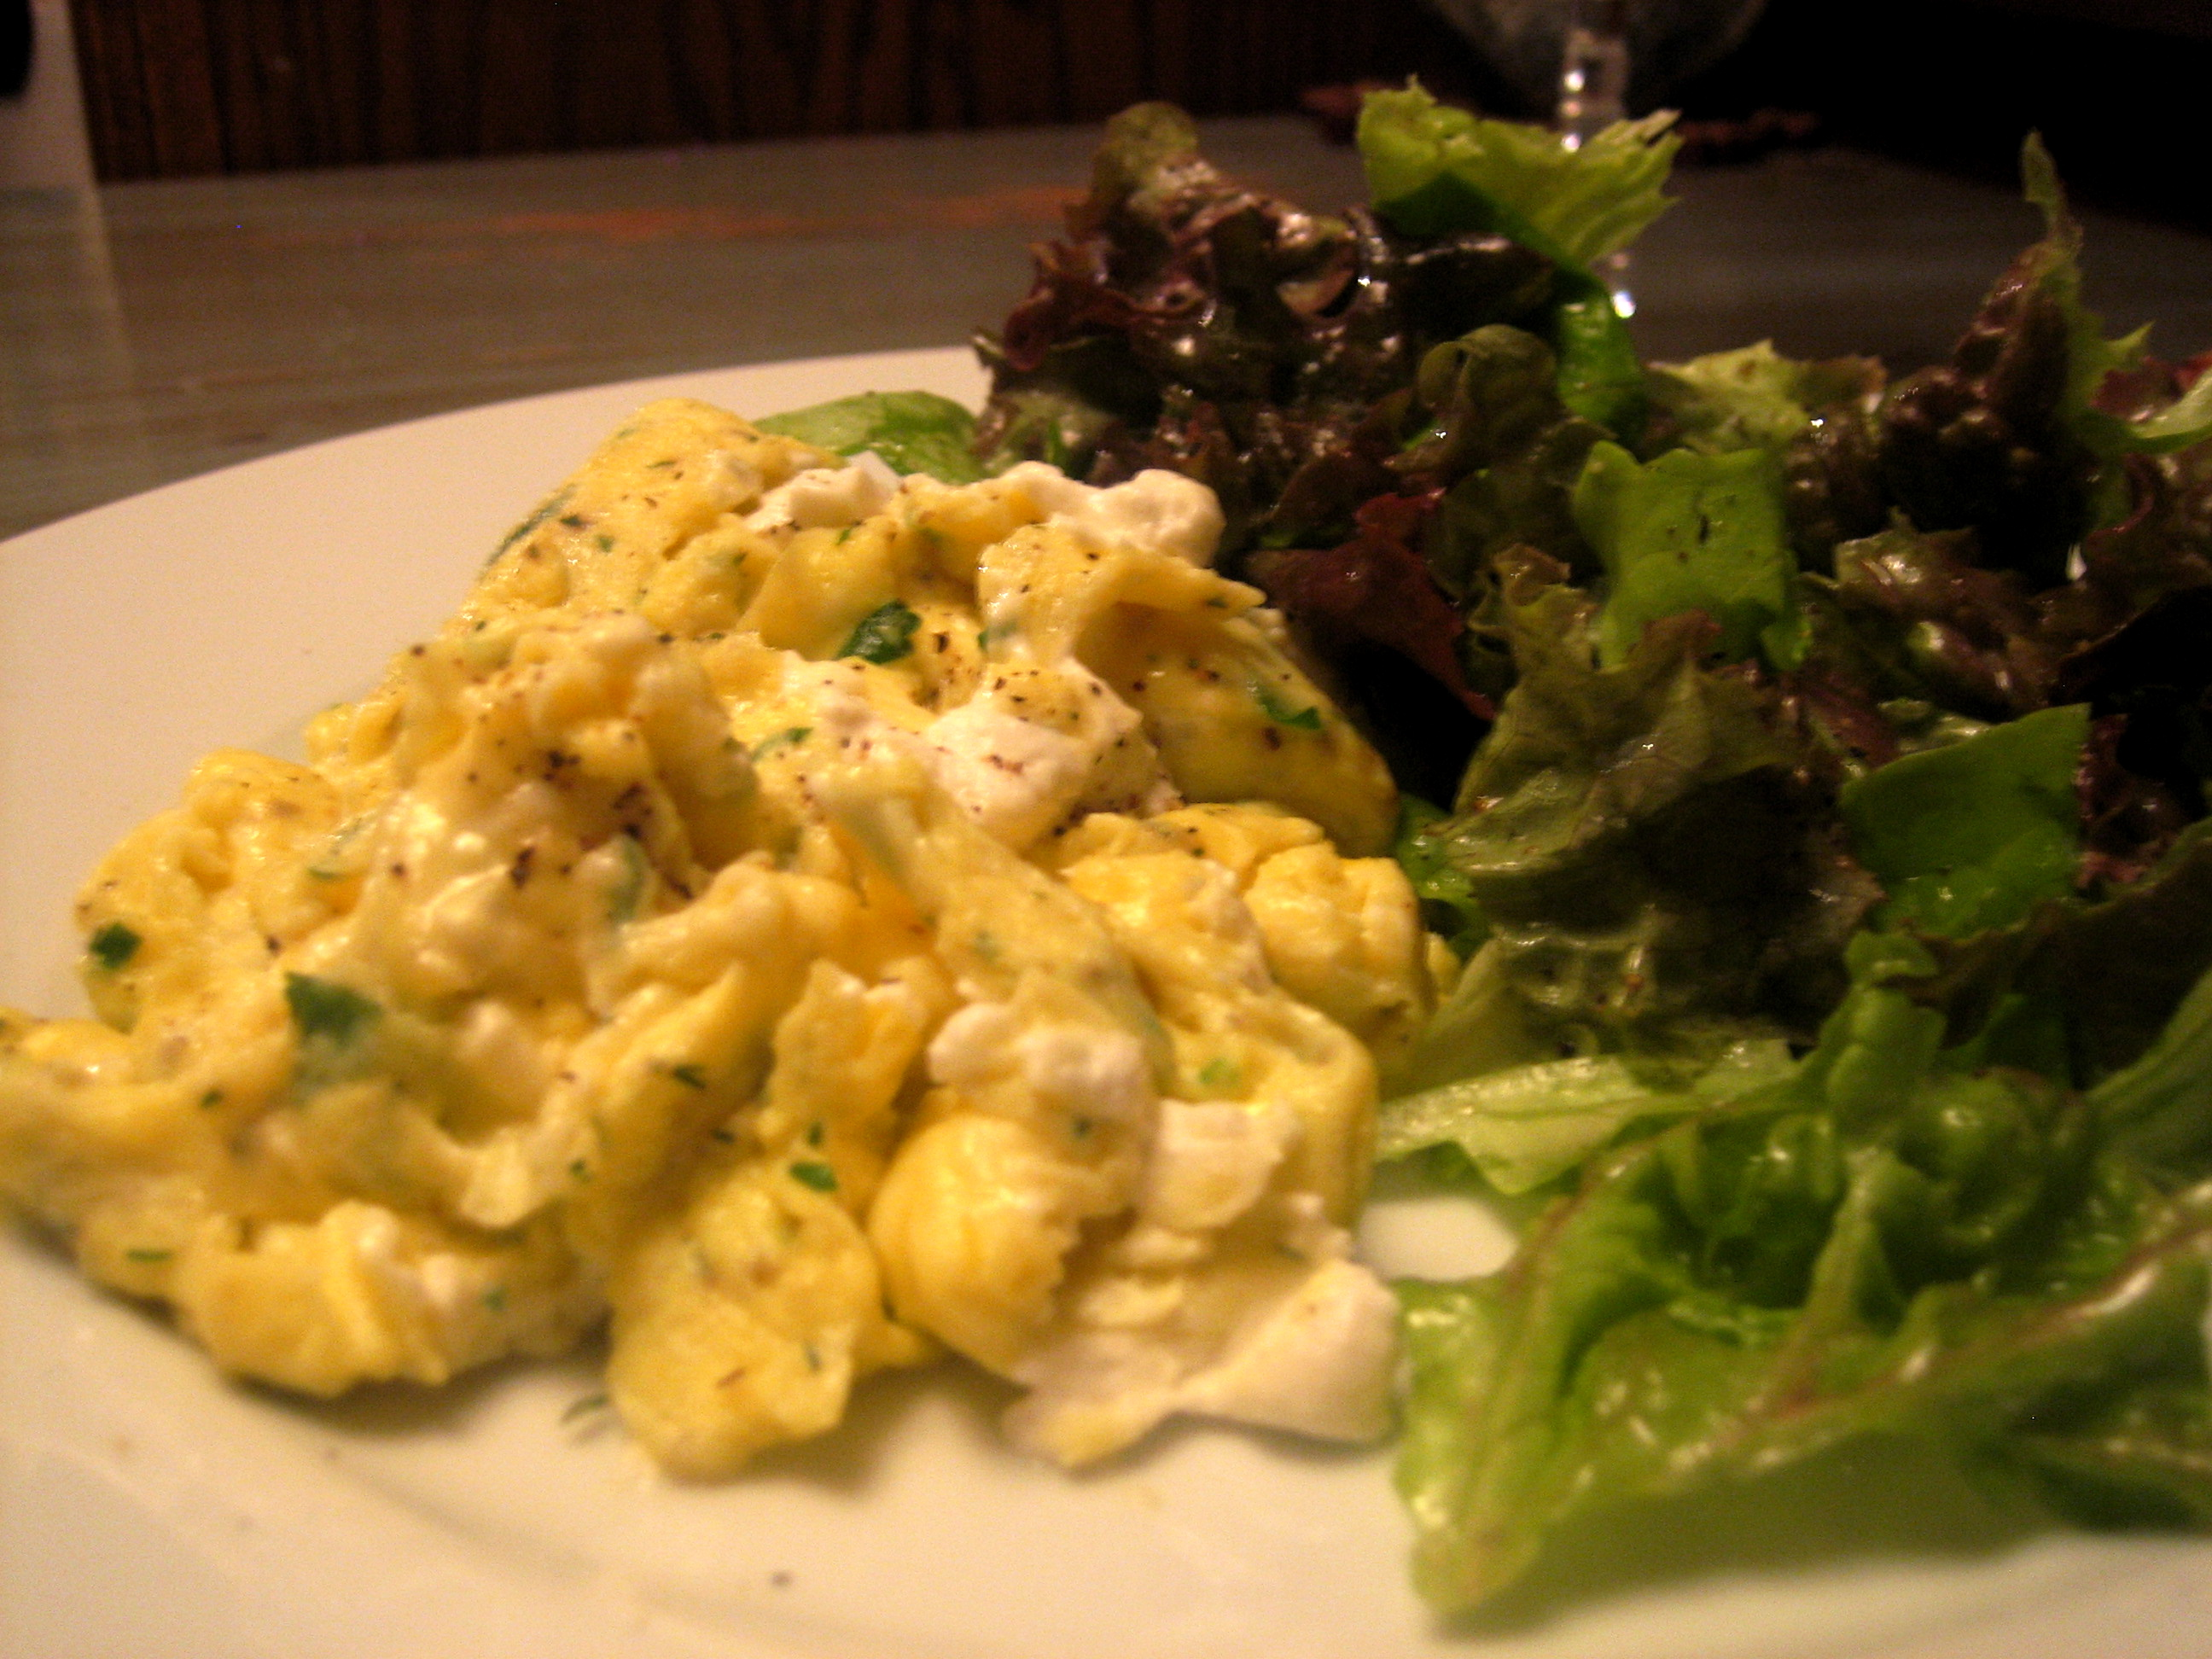 Fluffy Herbed Eggs with a Soft Green Salad